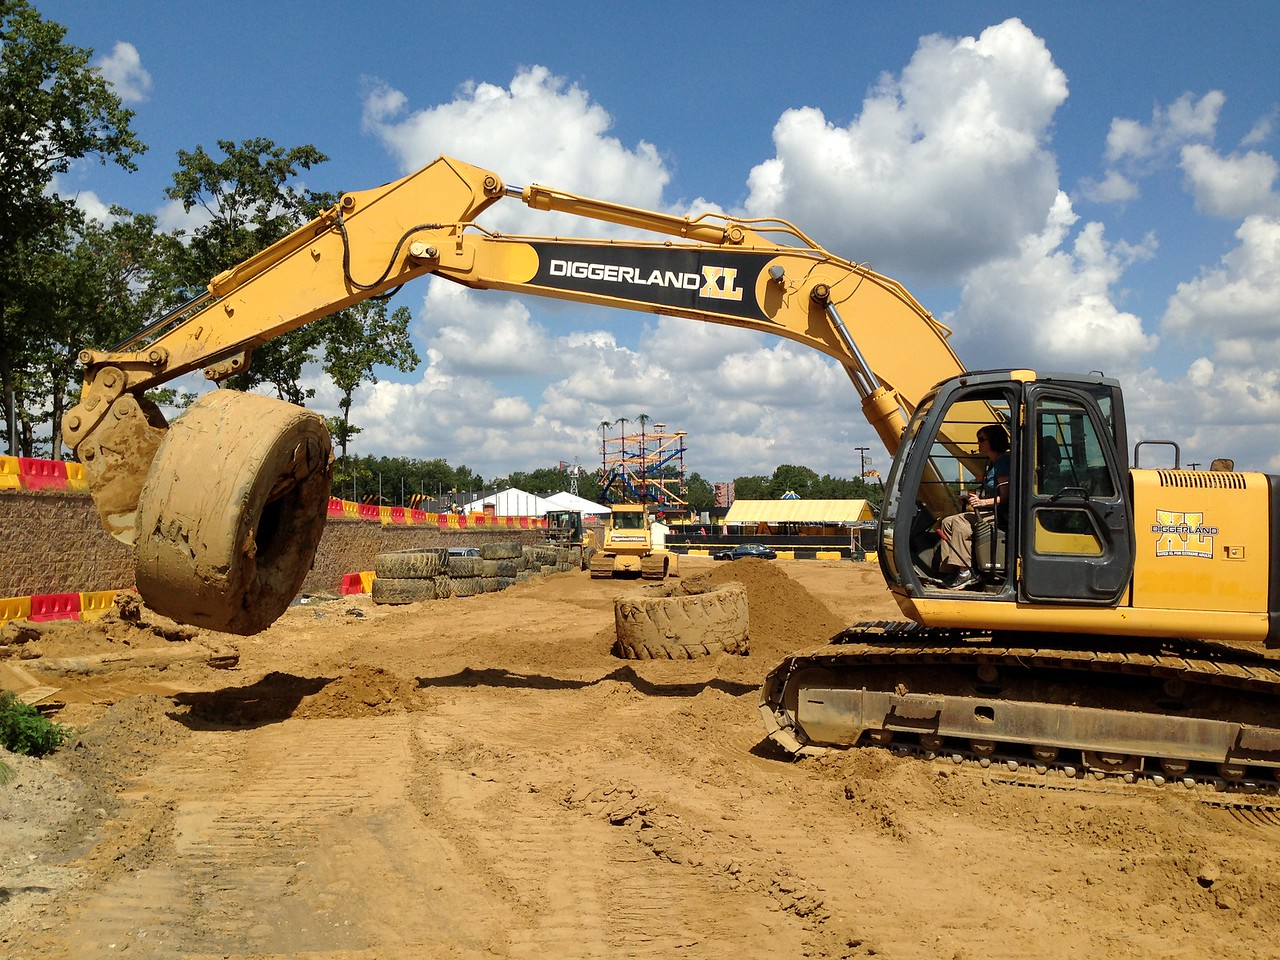 Snagged it!<br /> <br /> The excavator works by two joysticks, controlling arm reach, machine swivel, and bucket scoop and dump. Moving the machine is via two foot pedals that move the treads like a tank. Again, throttle sets the engine speed and stays there via a separate lever until you change something.